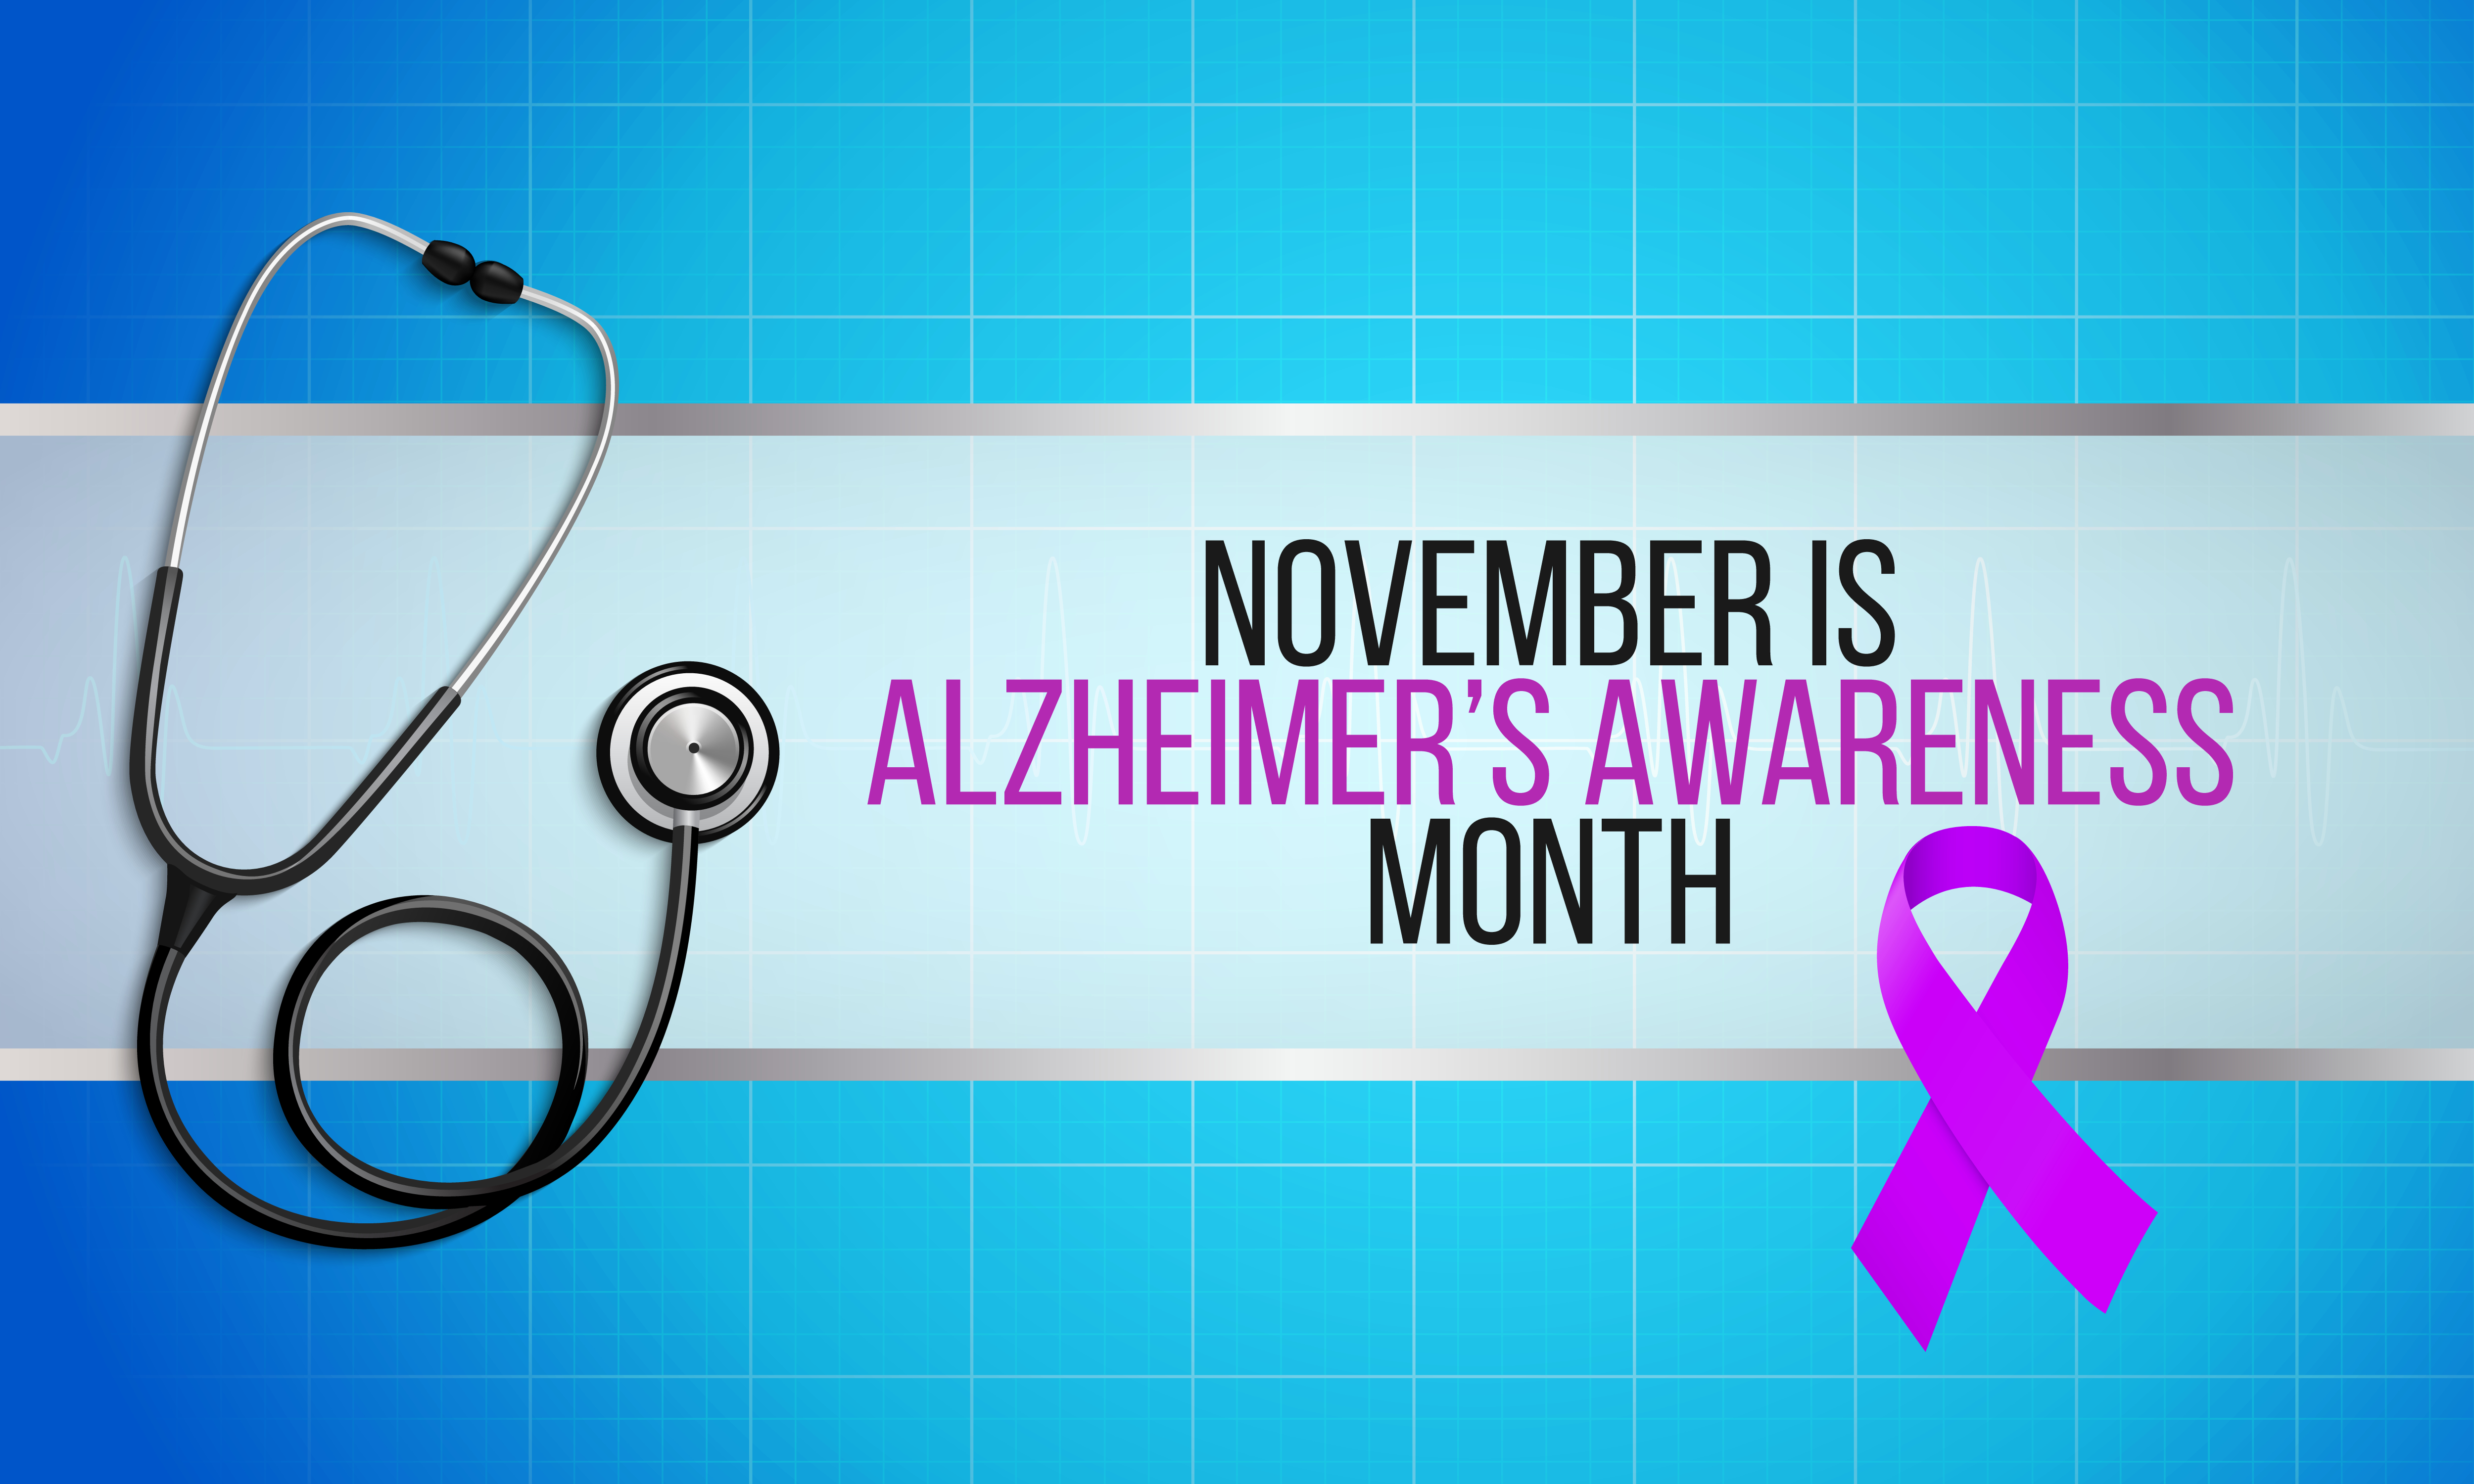 7 Ways You can Make a Difference During Alzheimer's Awareness Month